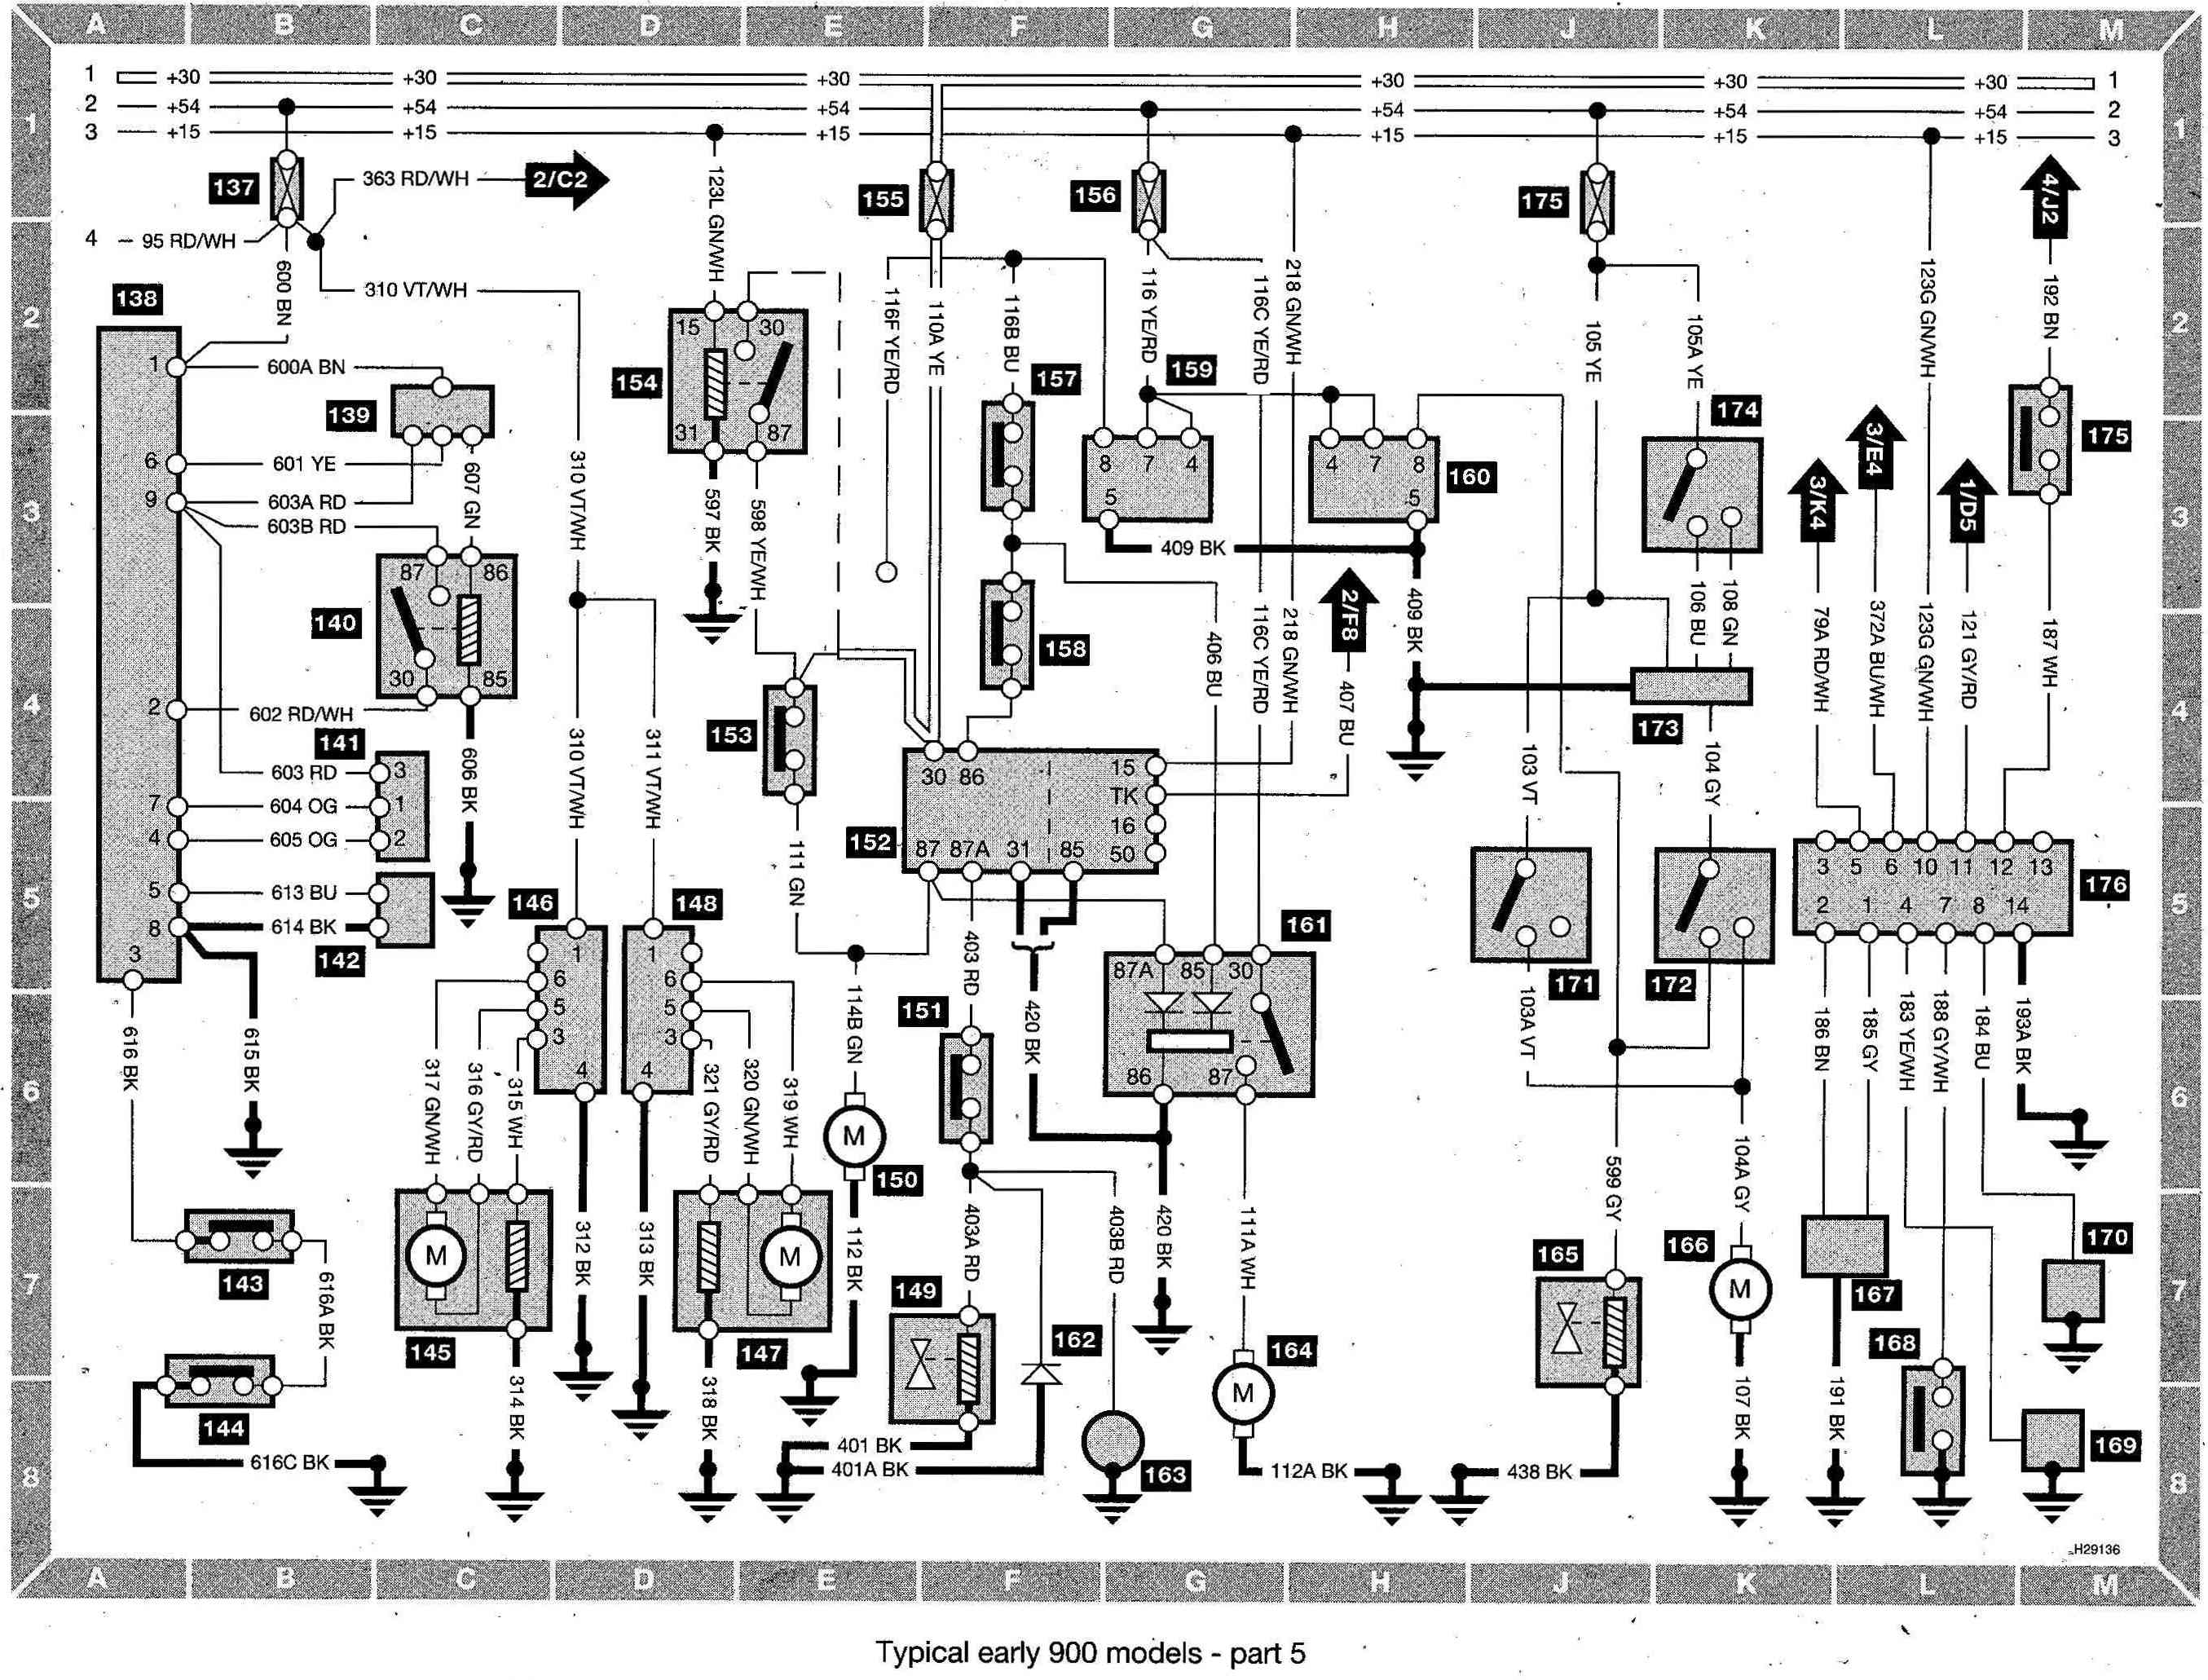 BYNU_2125] 2003 Saab 9 3 Convertible Wiring Diagram Database Wiring Diagram  - PDADIAGRAM.AGUDOJOVEN.ESDiagram Database Website Full Edition - AGUDOJOVEN.ES